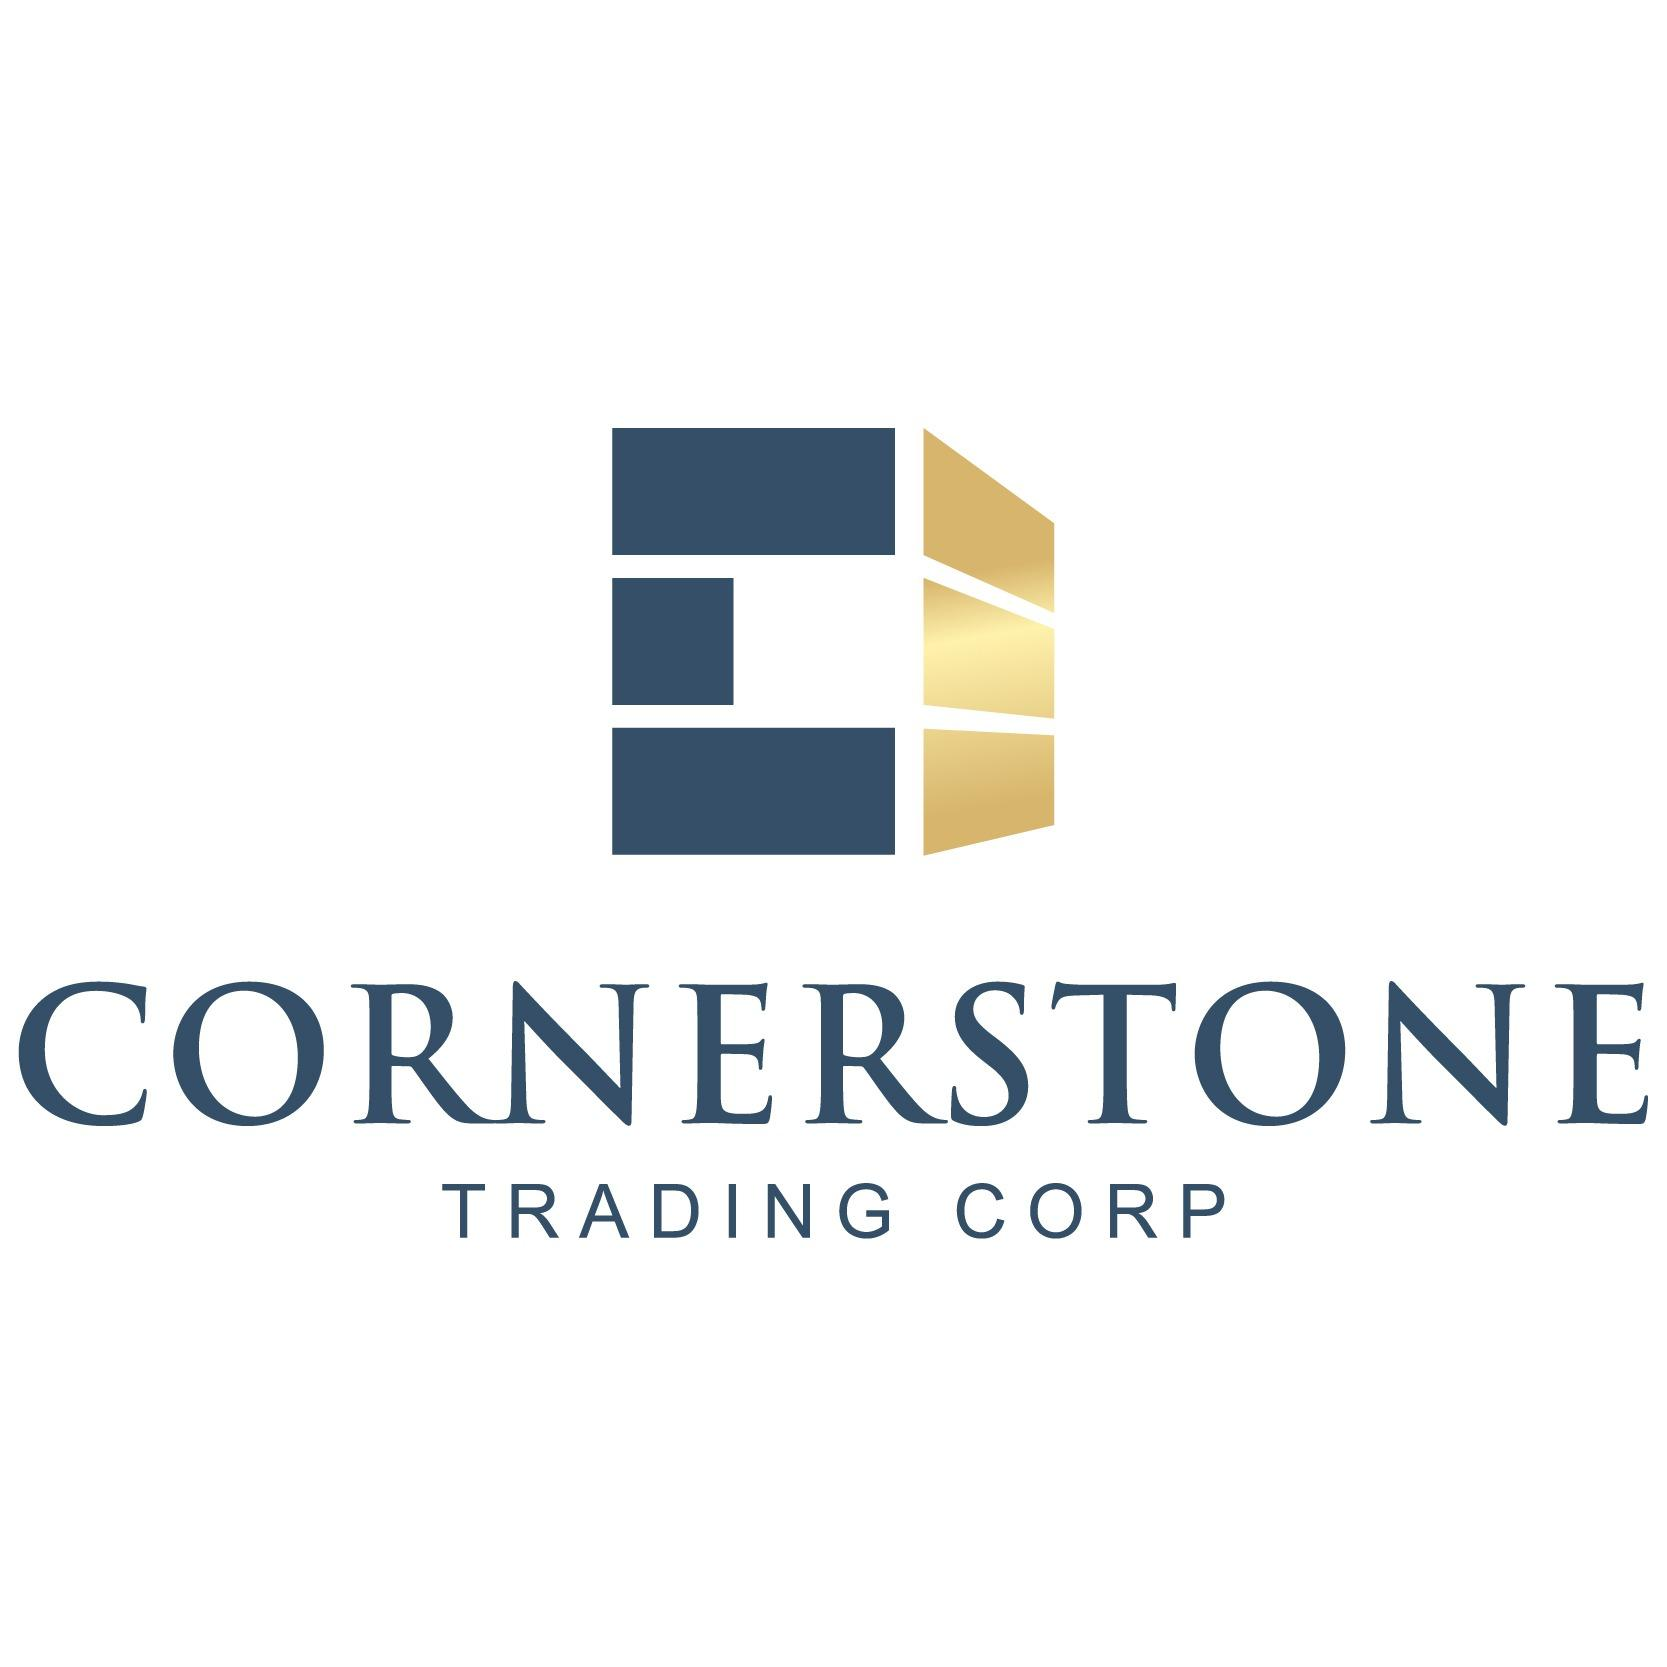 image of Cornerstone Trading corp.